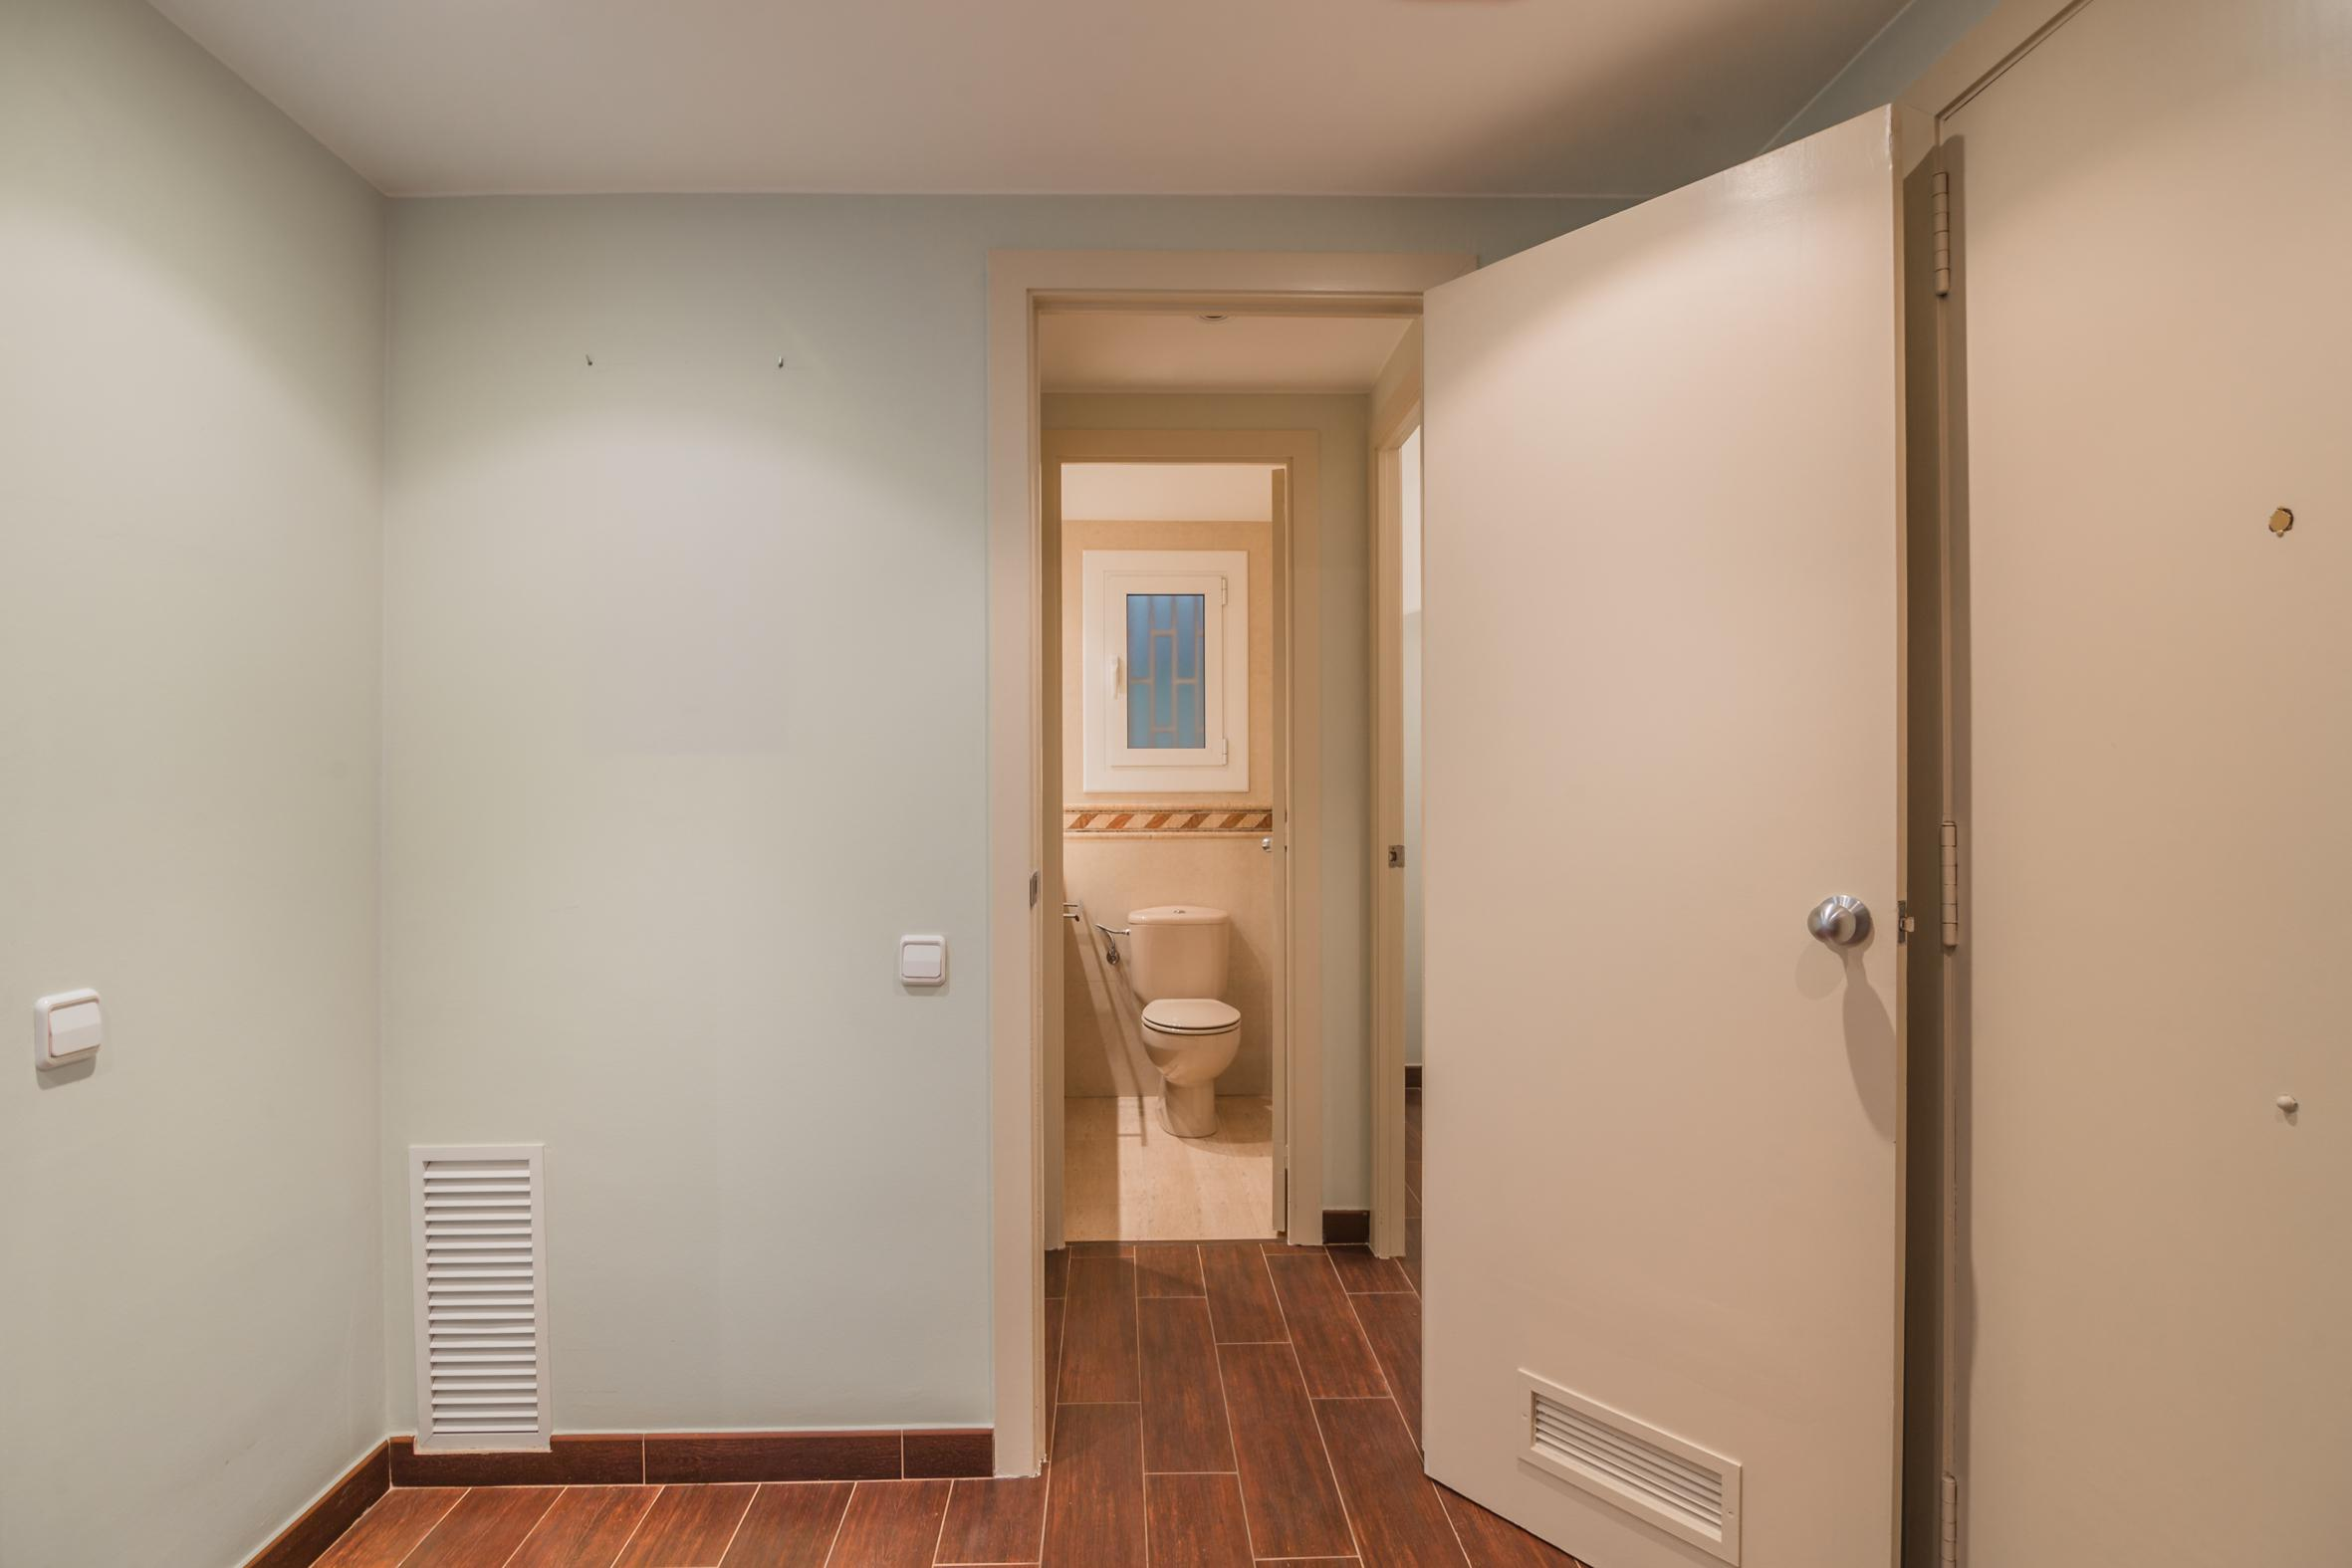 246902 Flat for sale in Les Corts, Pedralbes 19